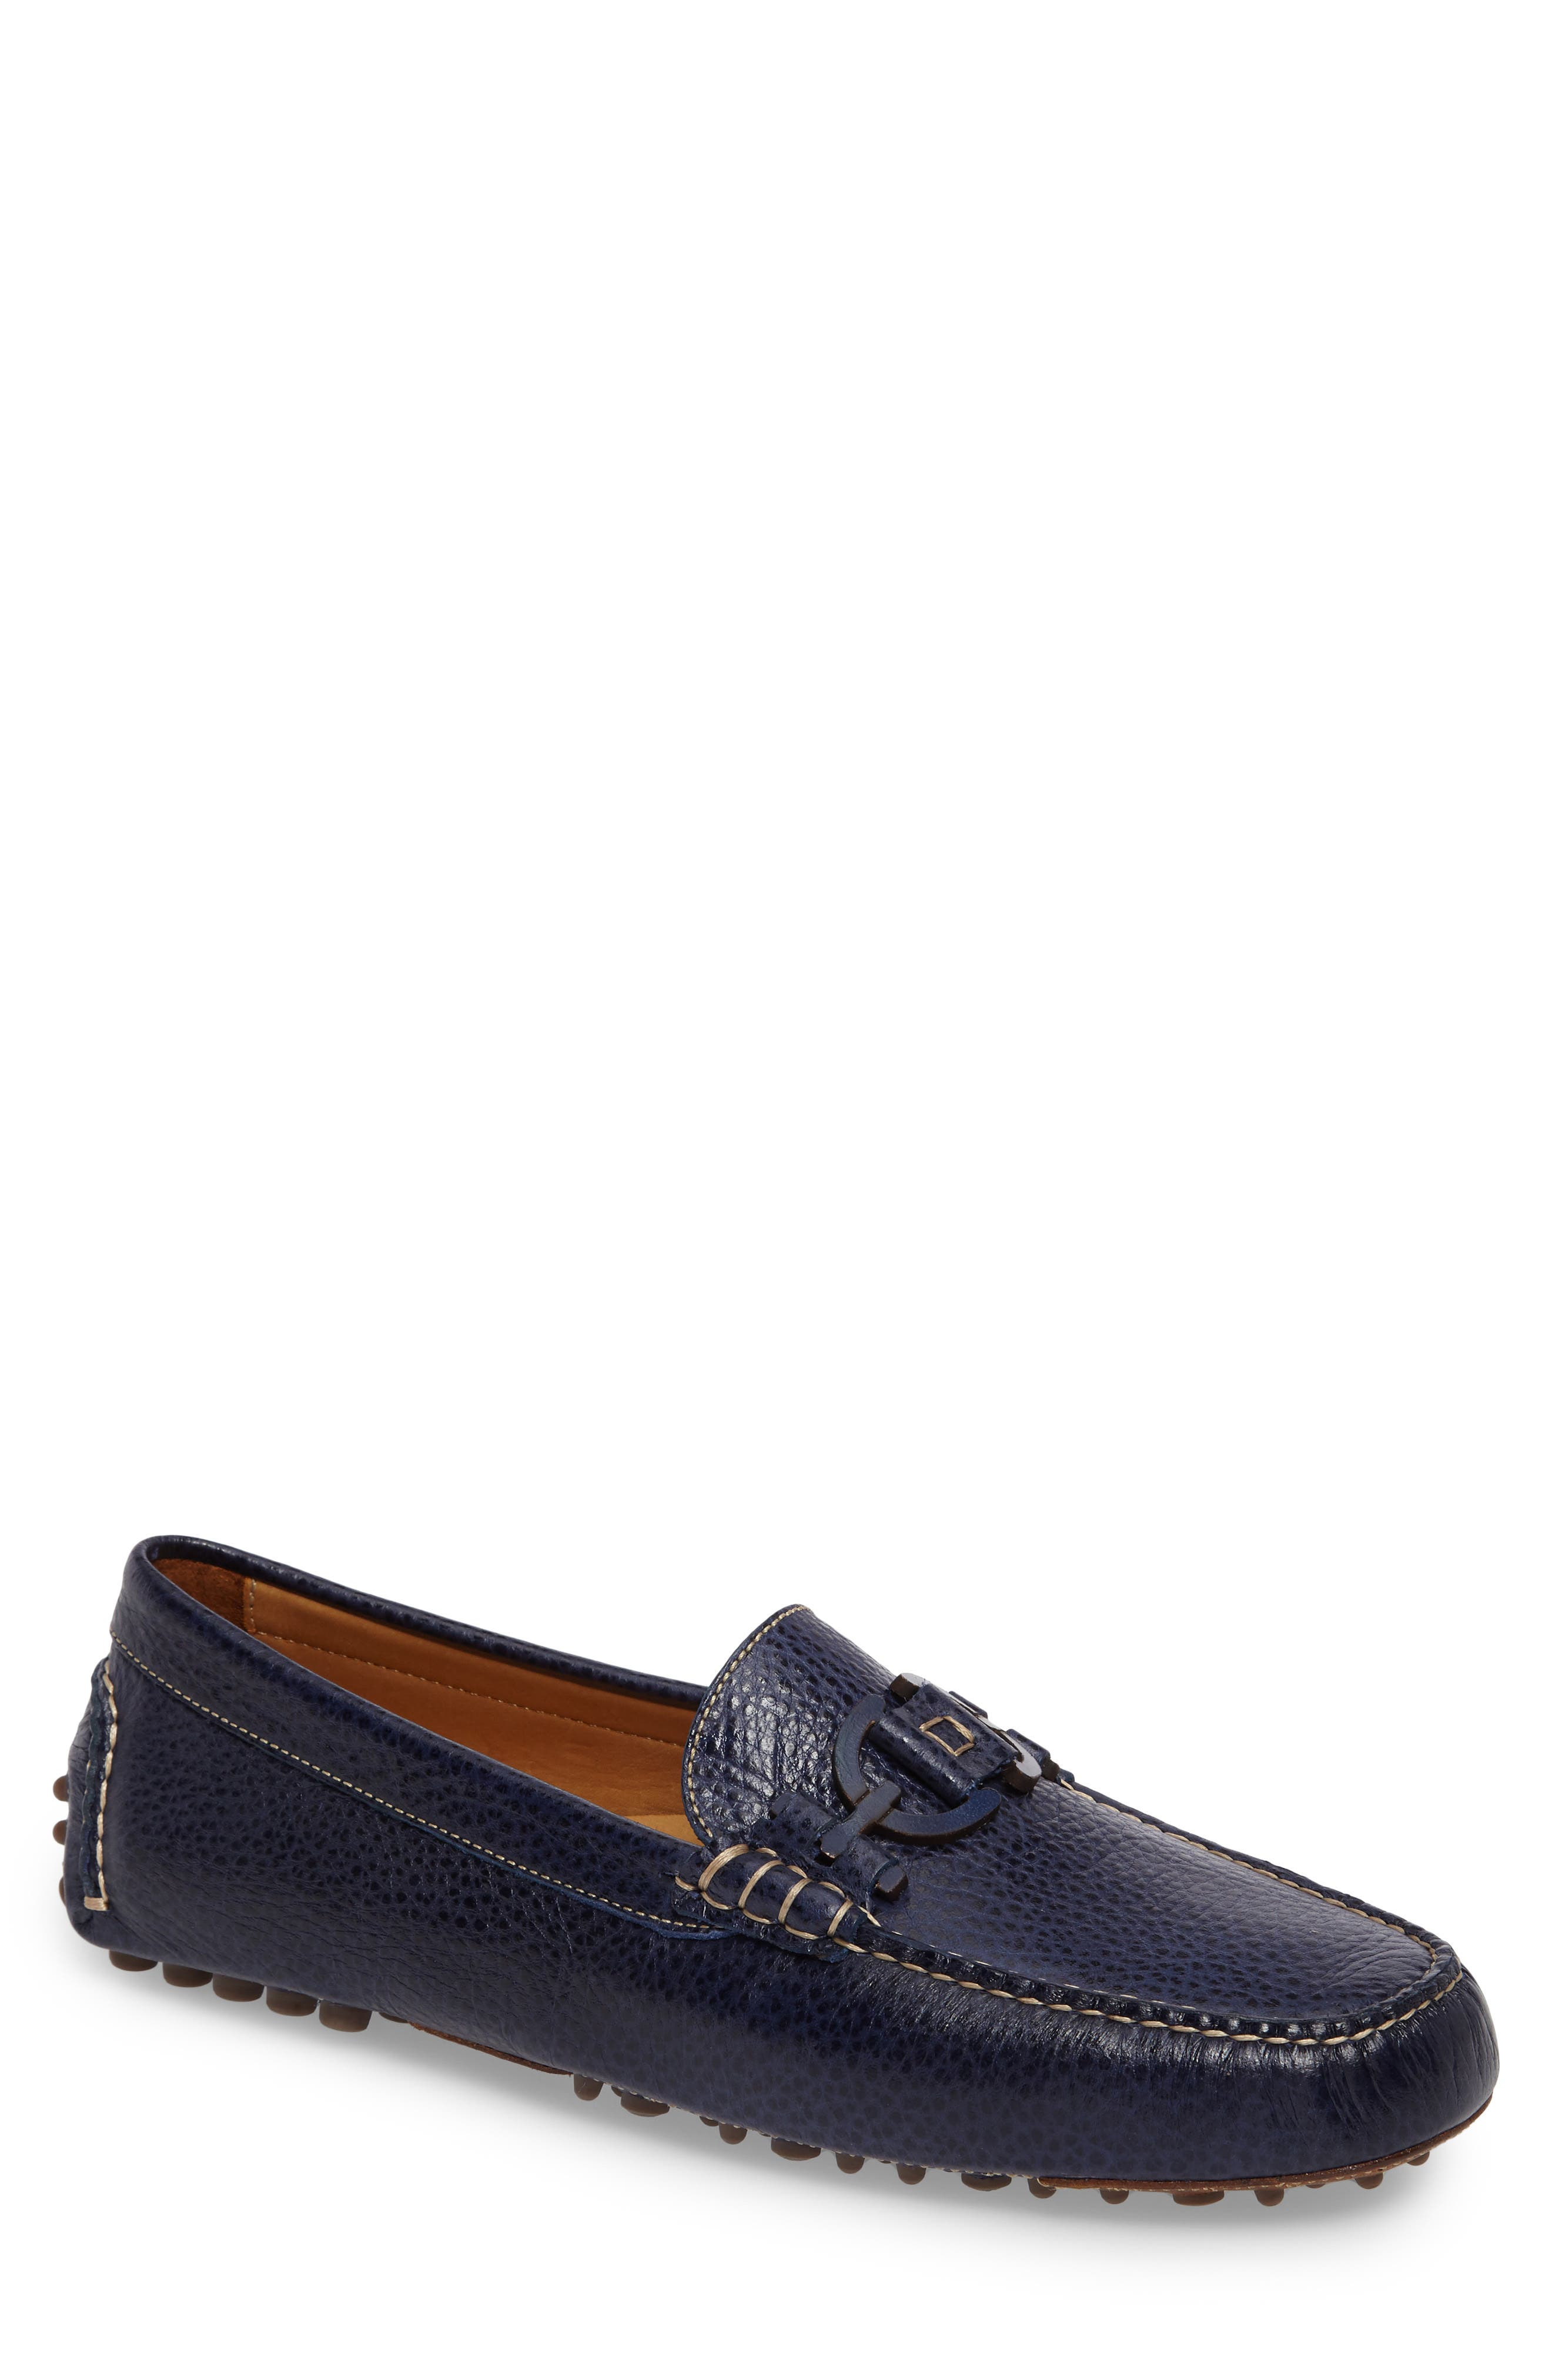 Donald J Pliner Riel Driving Loafer (Men)